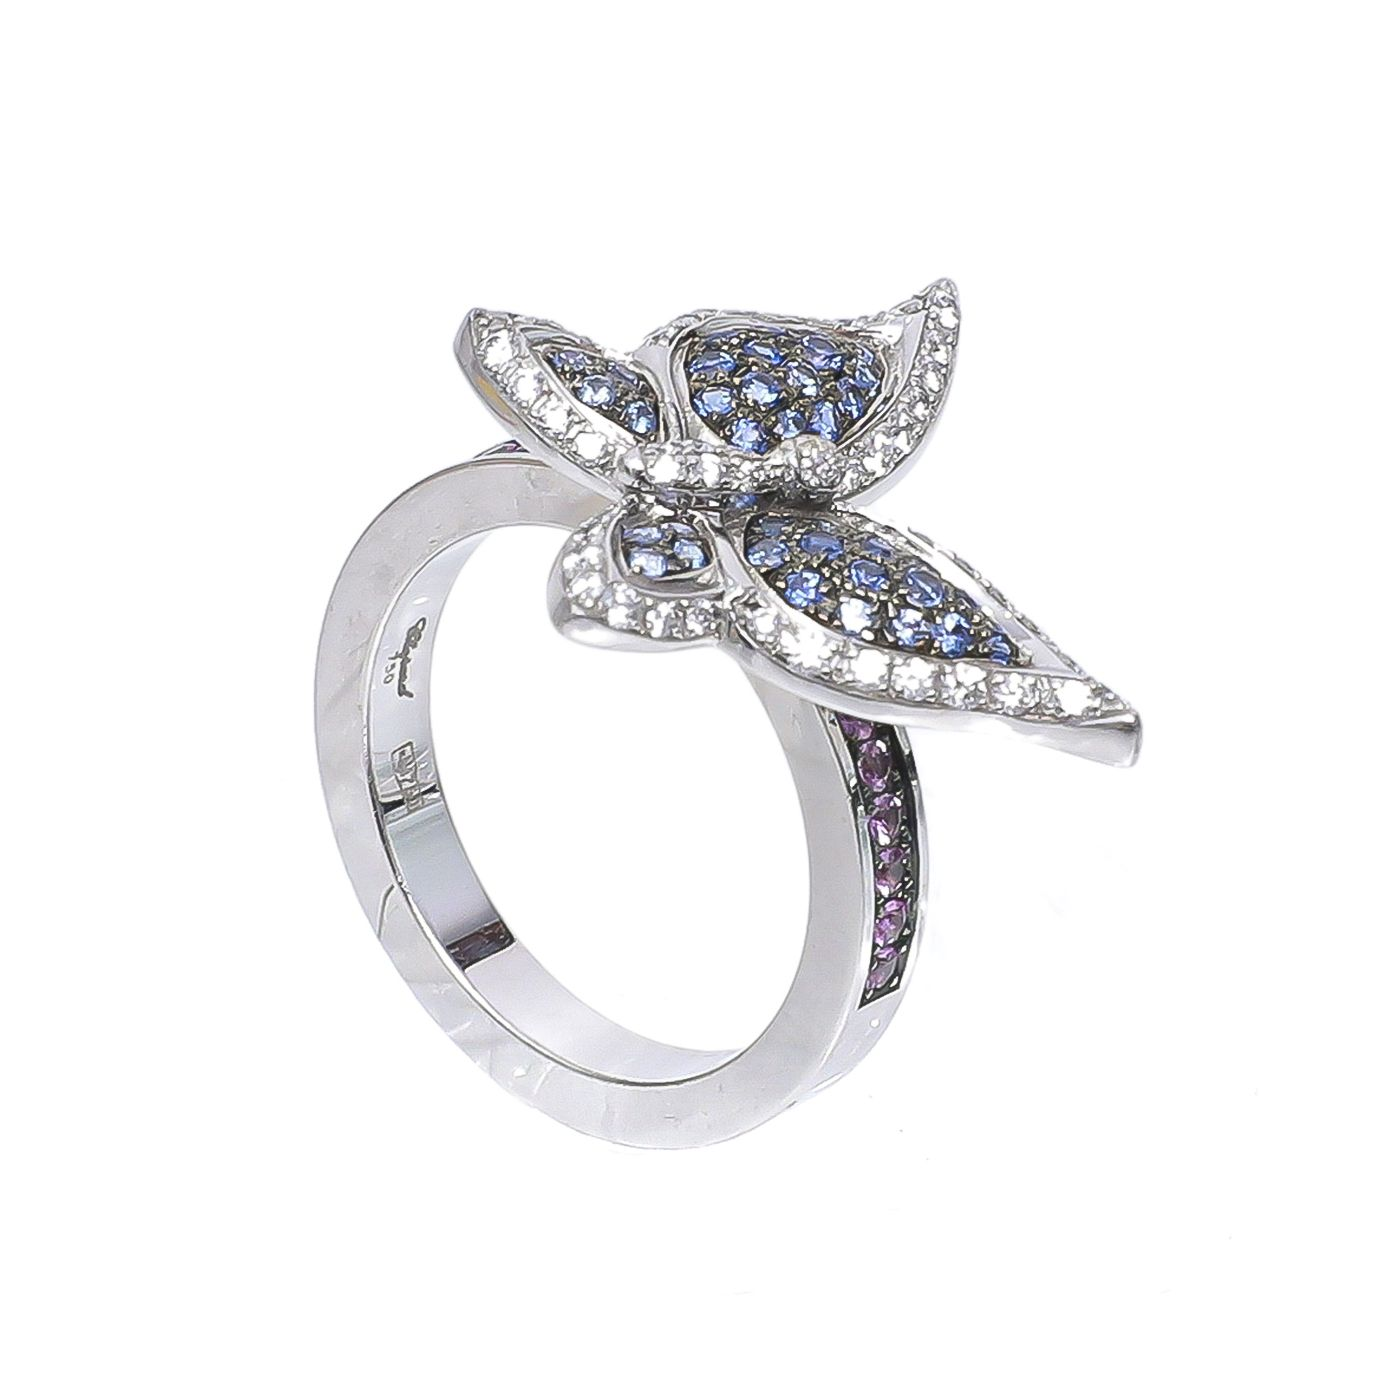 Chopard White Gold Butterfly W/ Diamonds Ring